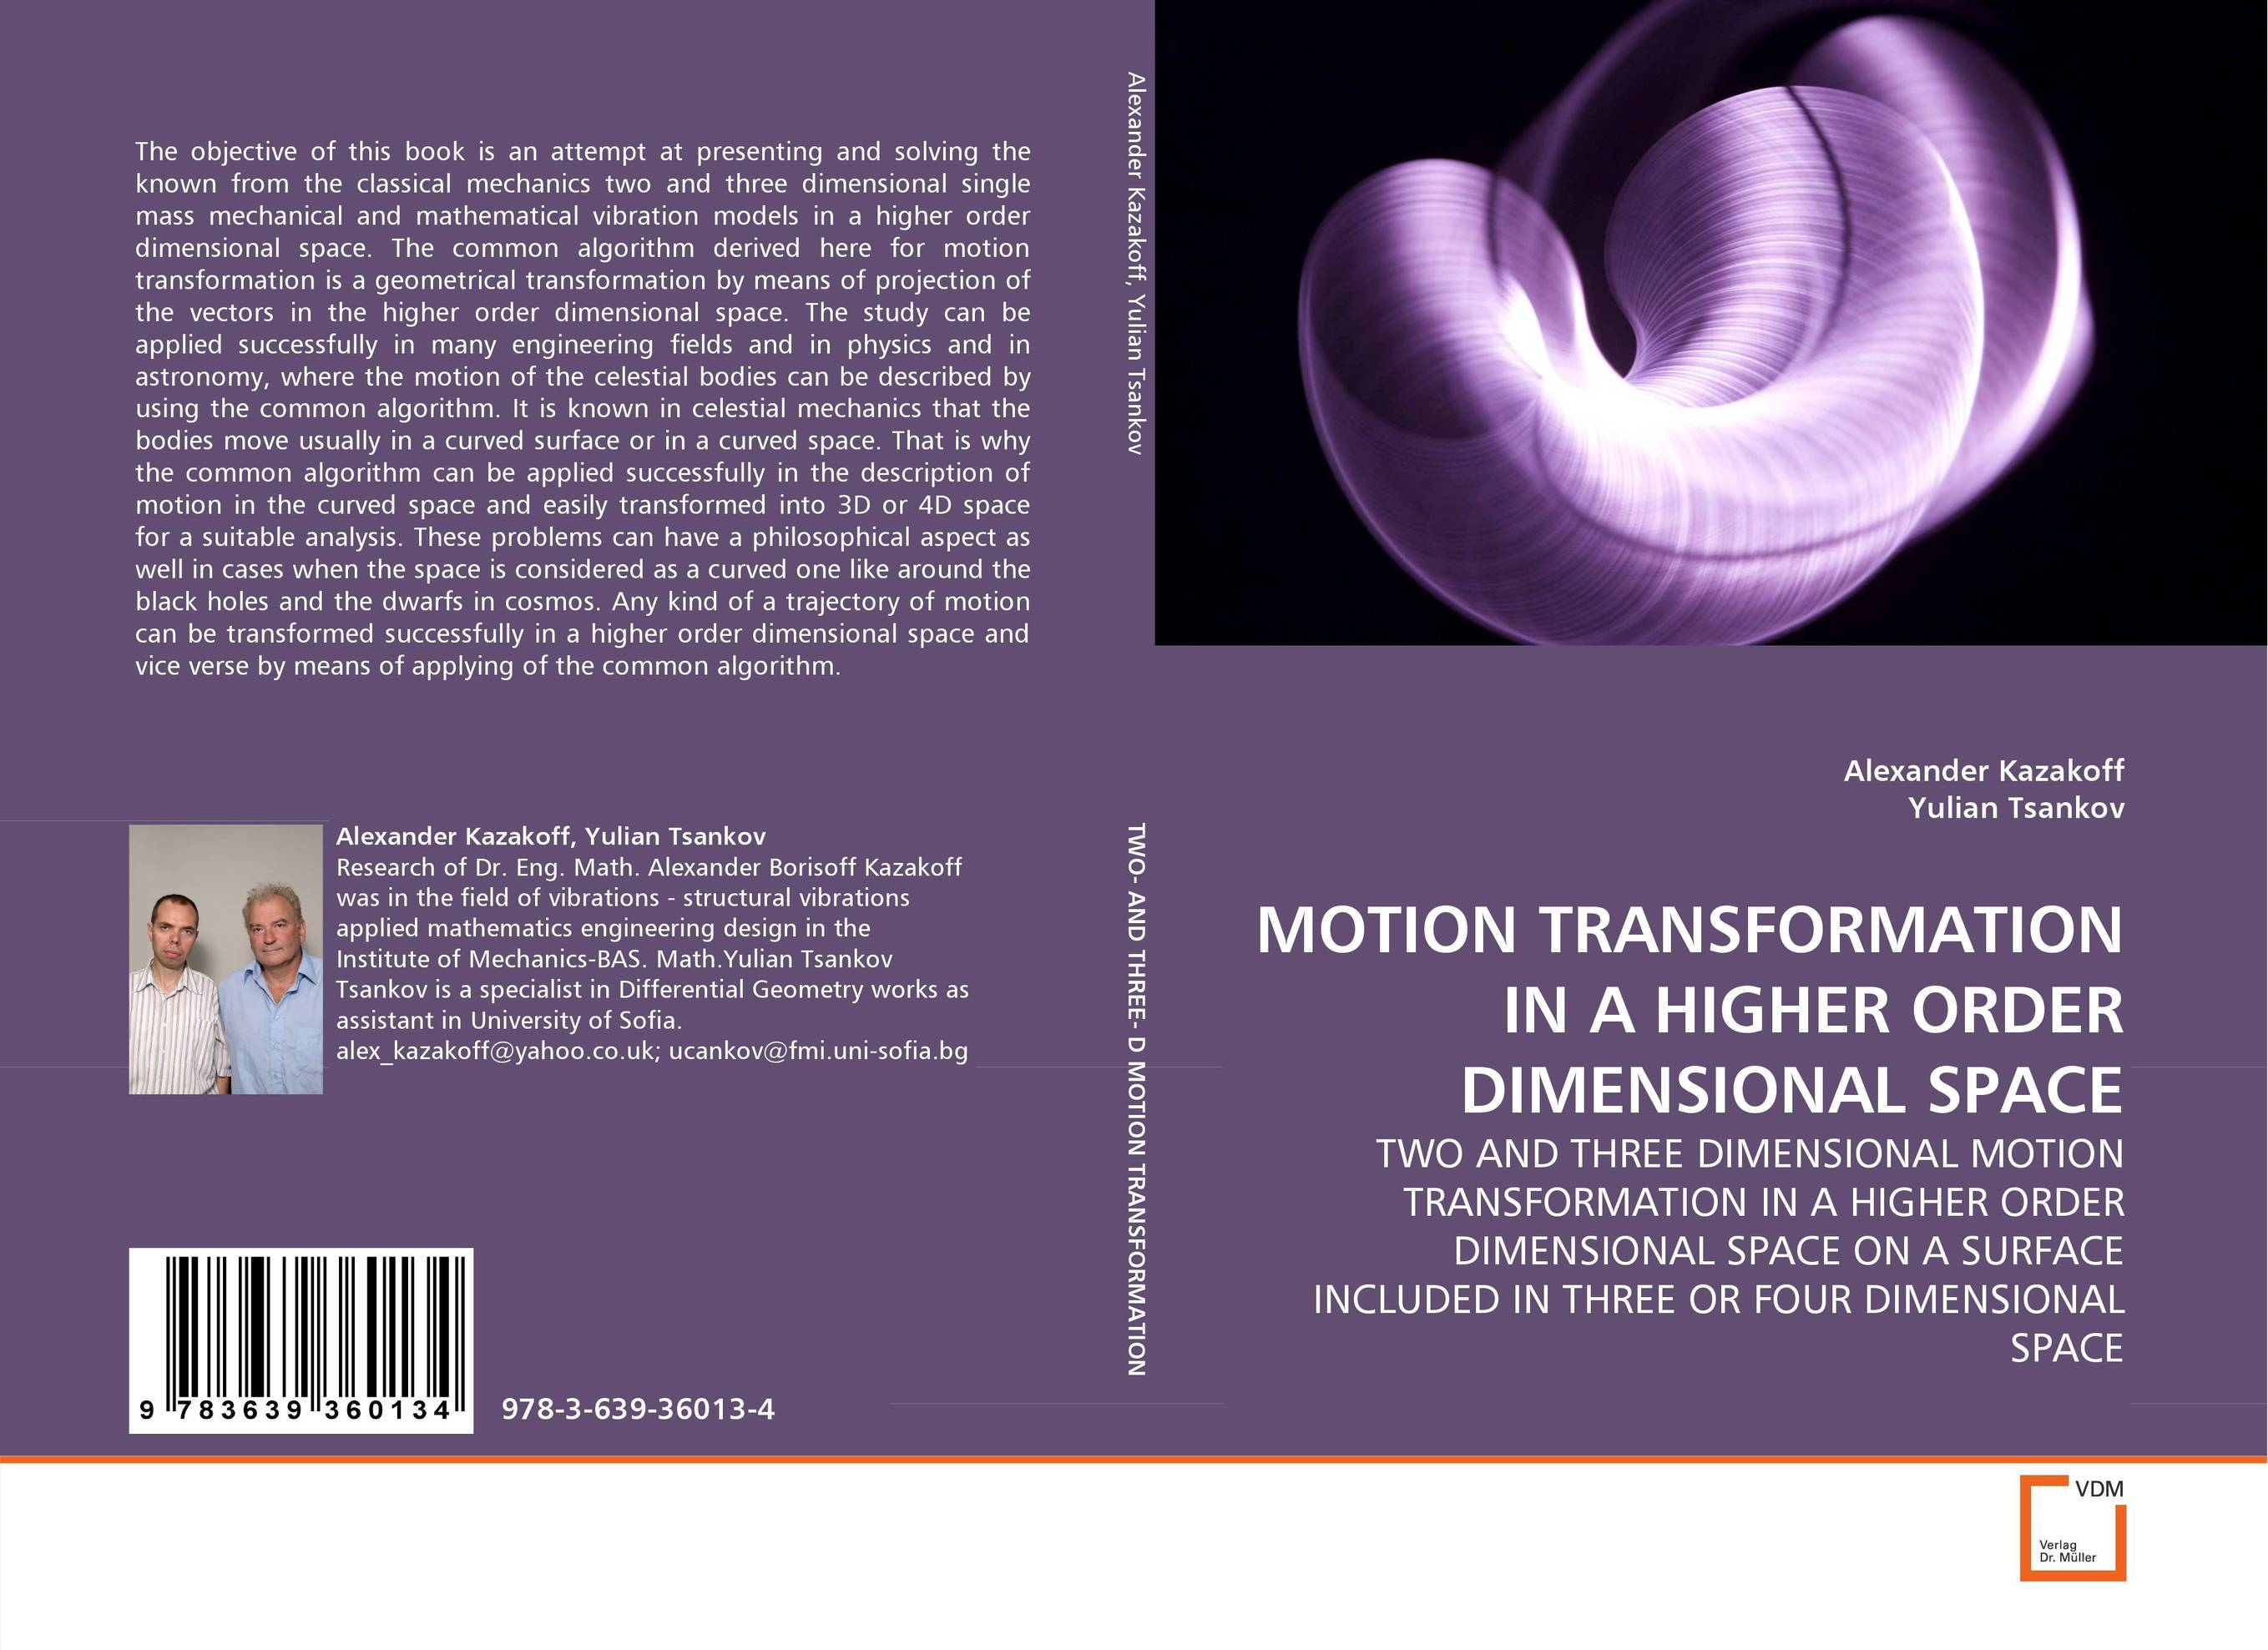 MOTION TRANSFORMATION IN A HIGHER ORDER DIMENSIONAL SPACE space and mobility in palestine